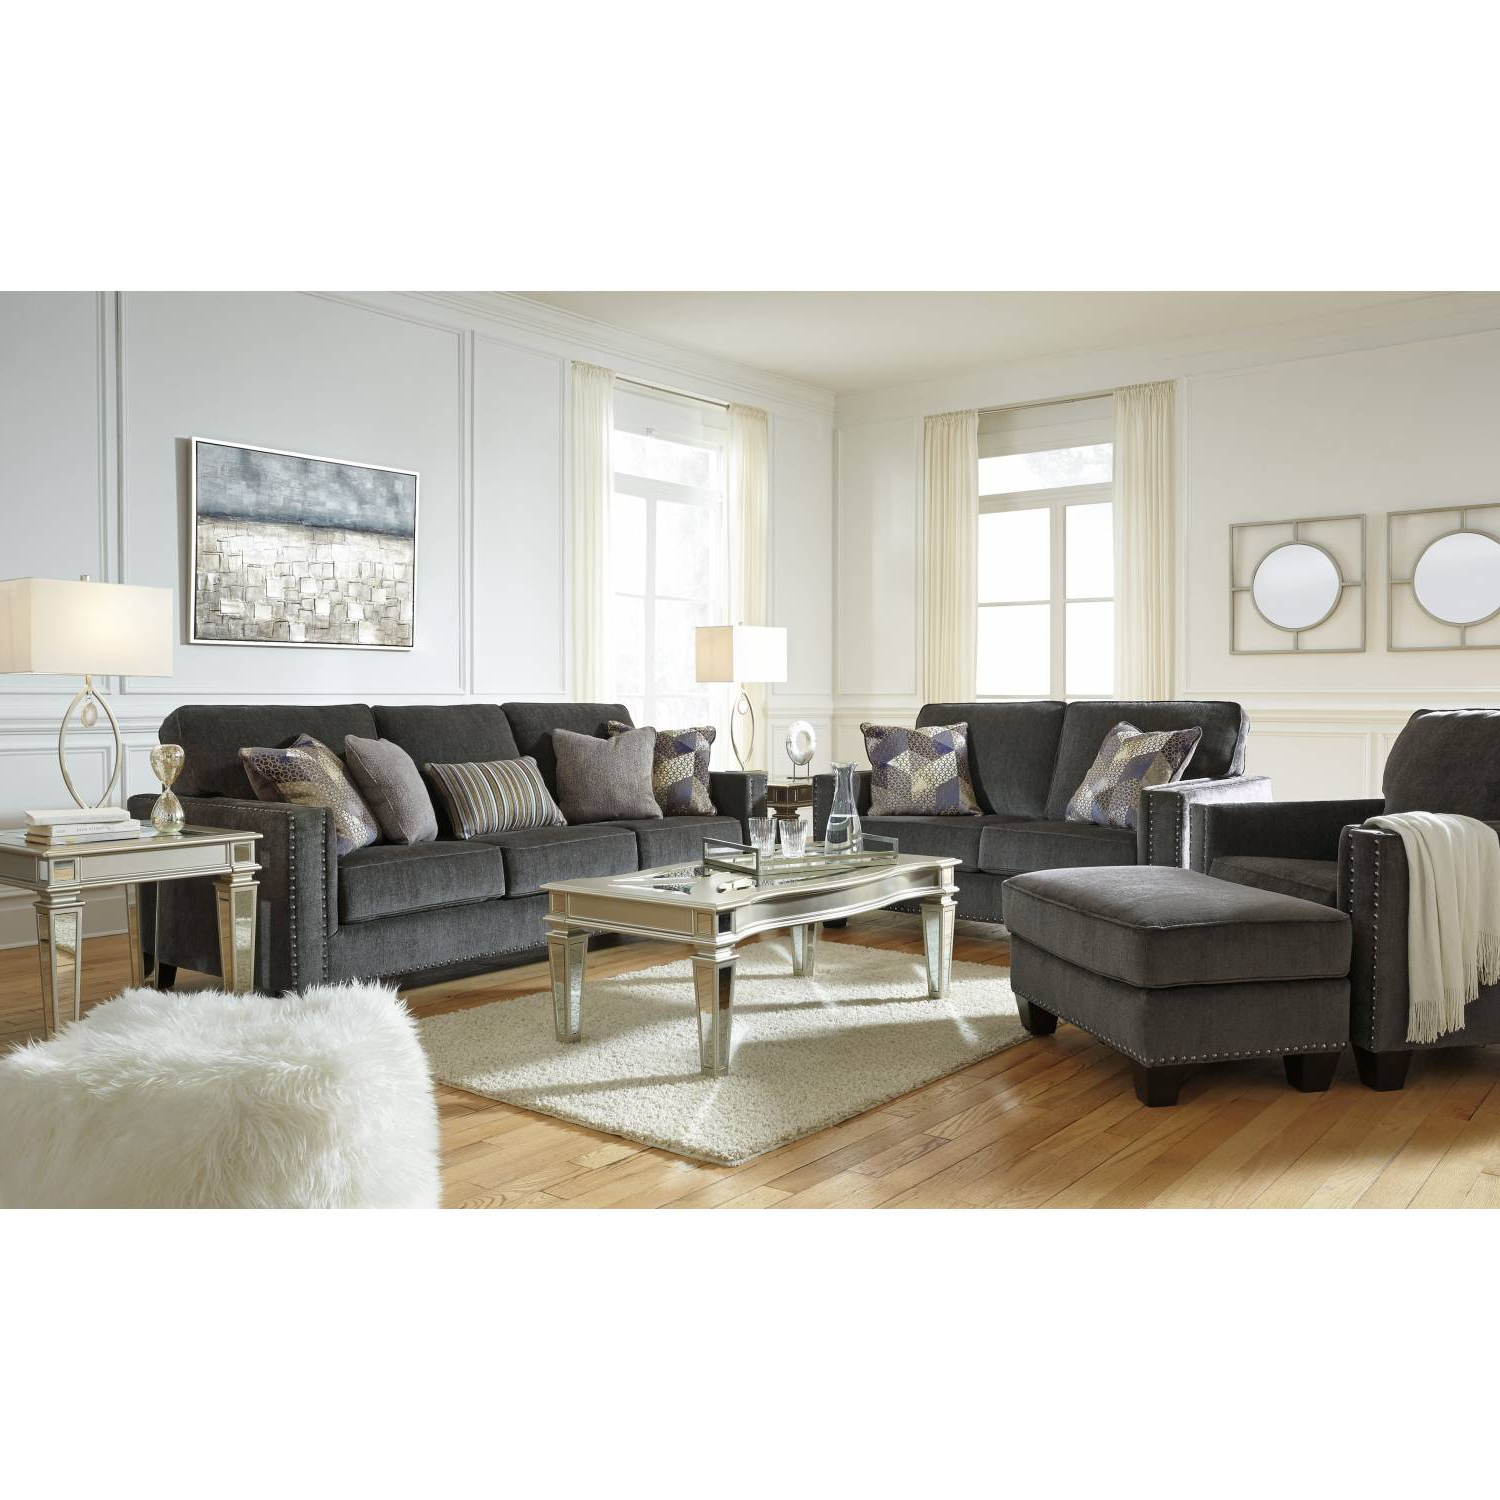 4pc Beckett Contemporary Sectional Sofas And Ottoman Sets Regarding Widely Used 43001 Gavril 4pc Sets Sofa + Loveseat + Chair + Ottoman (View 19 of 20)